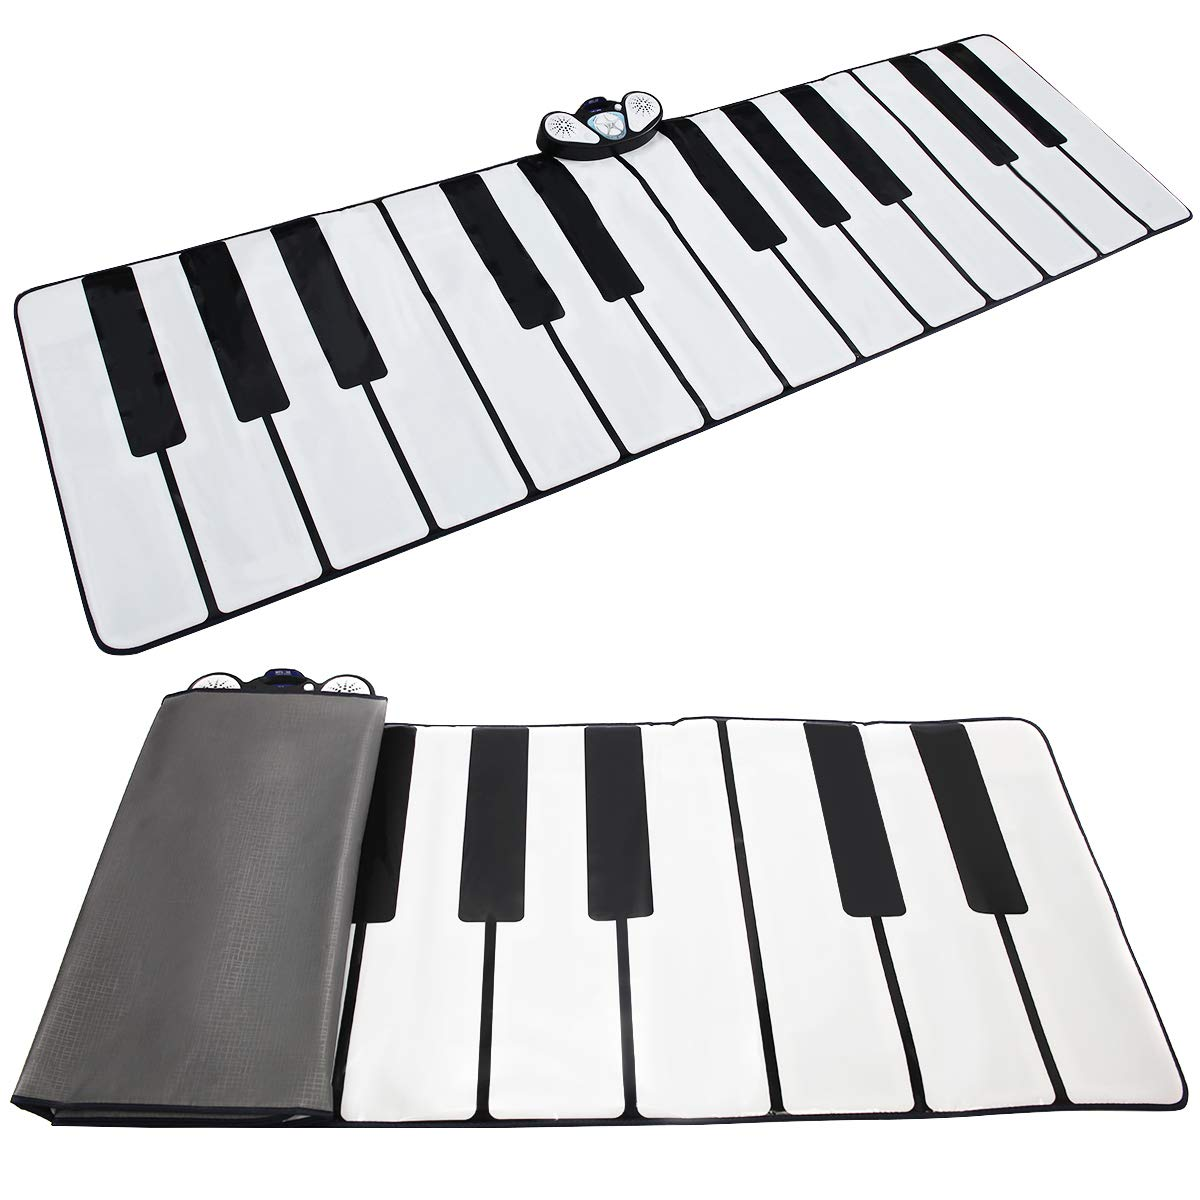 Costzon Giant Keyboard Playmat, 24 Keys Piano Play Mat, Foldable Activity Mat w/ 9 Selectable Musical Instruments, Play - Record - Playback - Demo - Tone Conversion Modes, Support MP3, Phone Play by Costzon (Image #4)